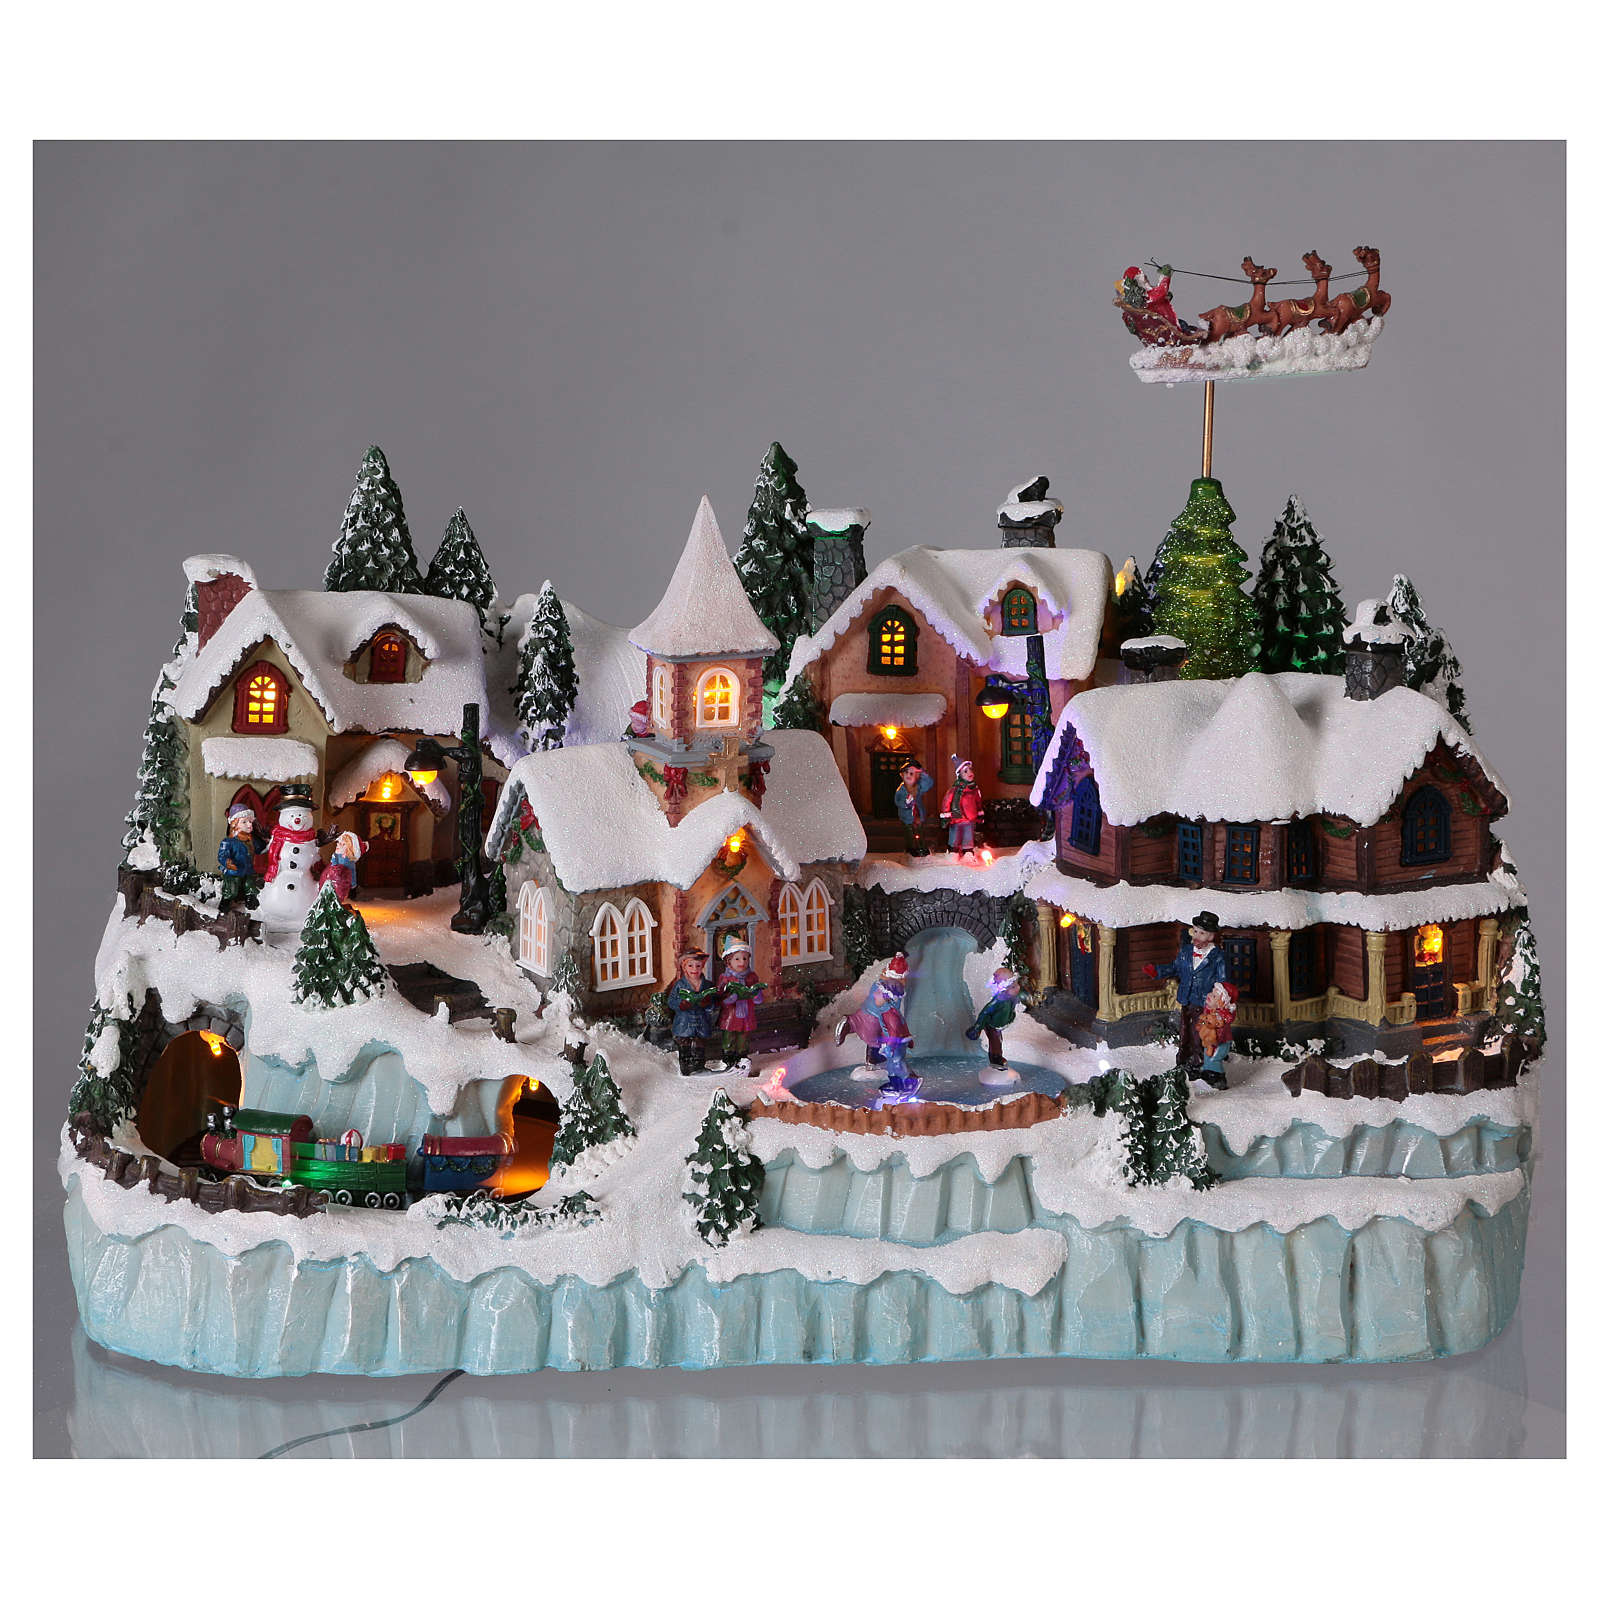 Christmas Villages.Christmas Village With Led Lights Ice Skaters And Moving Train 40x55x30 Cm